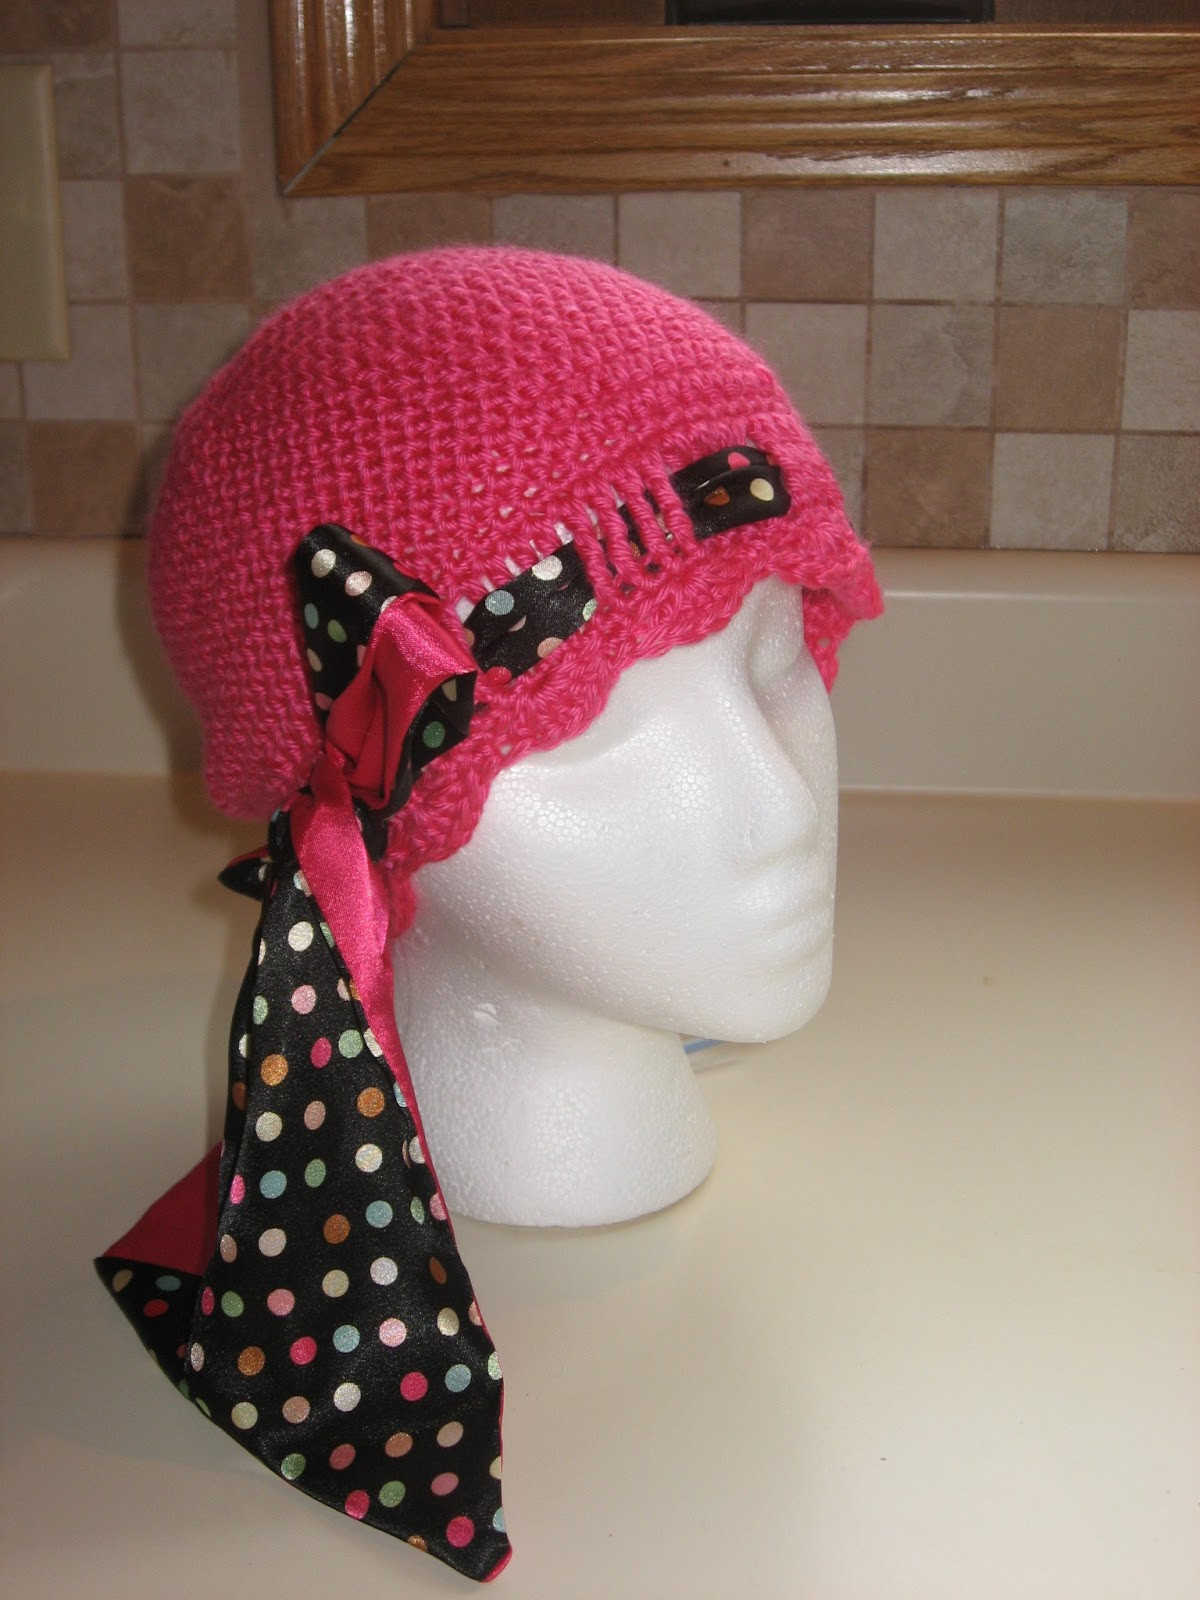 Luxury Crochet Projects More Chemo Hats Crochet Chemo Hats Of Adorable 42 Images Crochet Chemo Hats